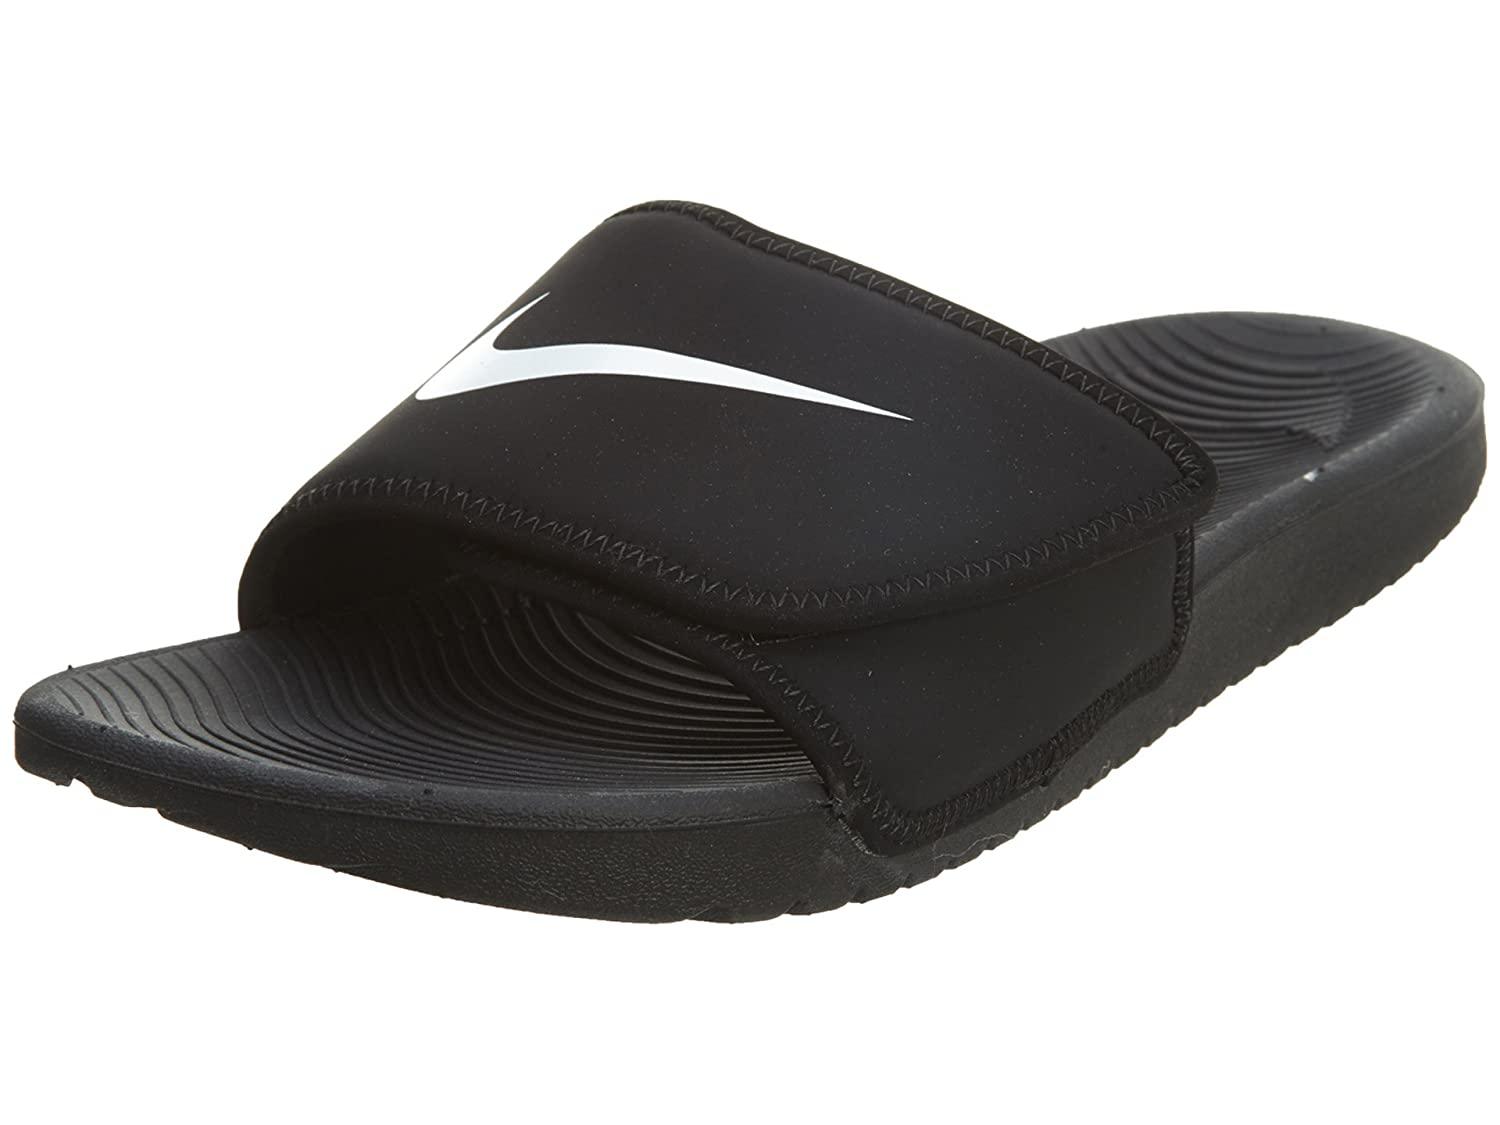 e752dcea3 ... coupon code for amazon nike boys kawa adjust slide sandal gs ps black  white size 12